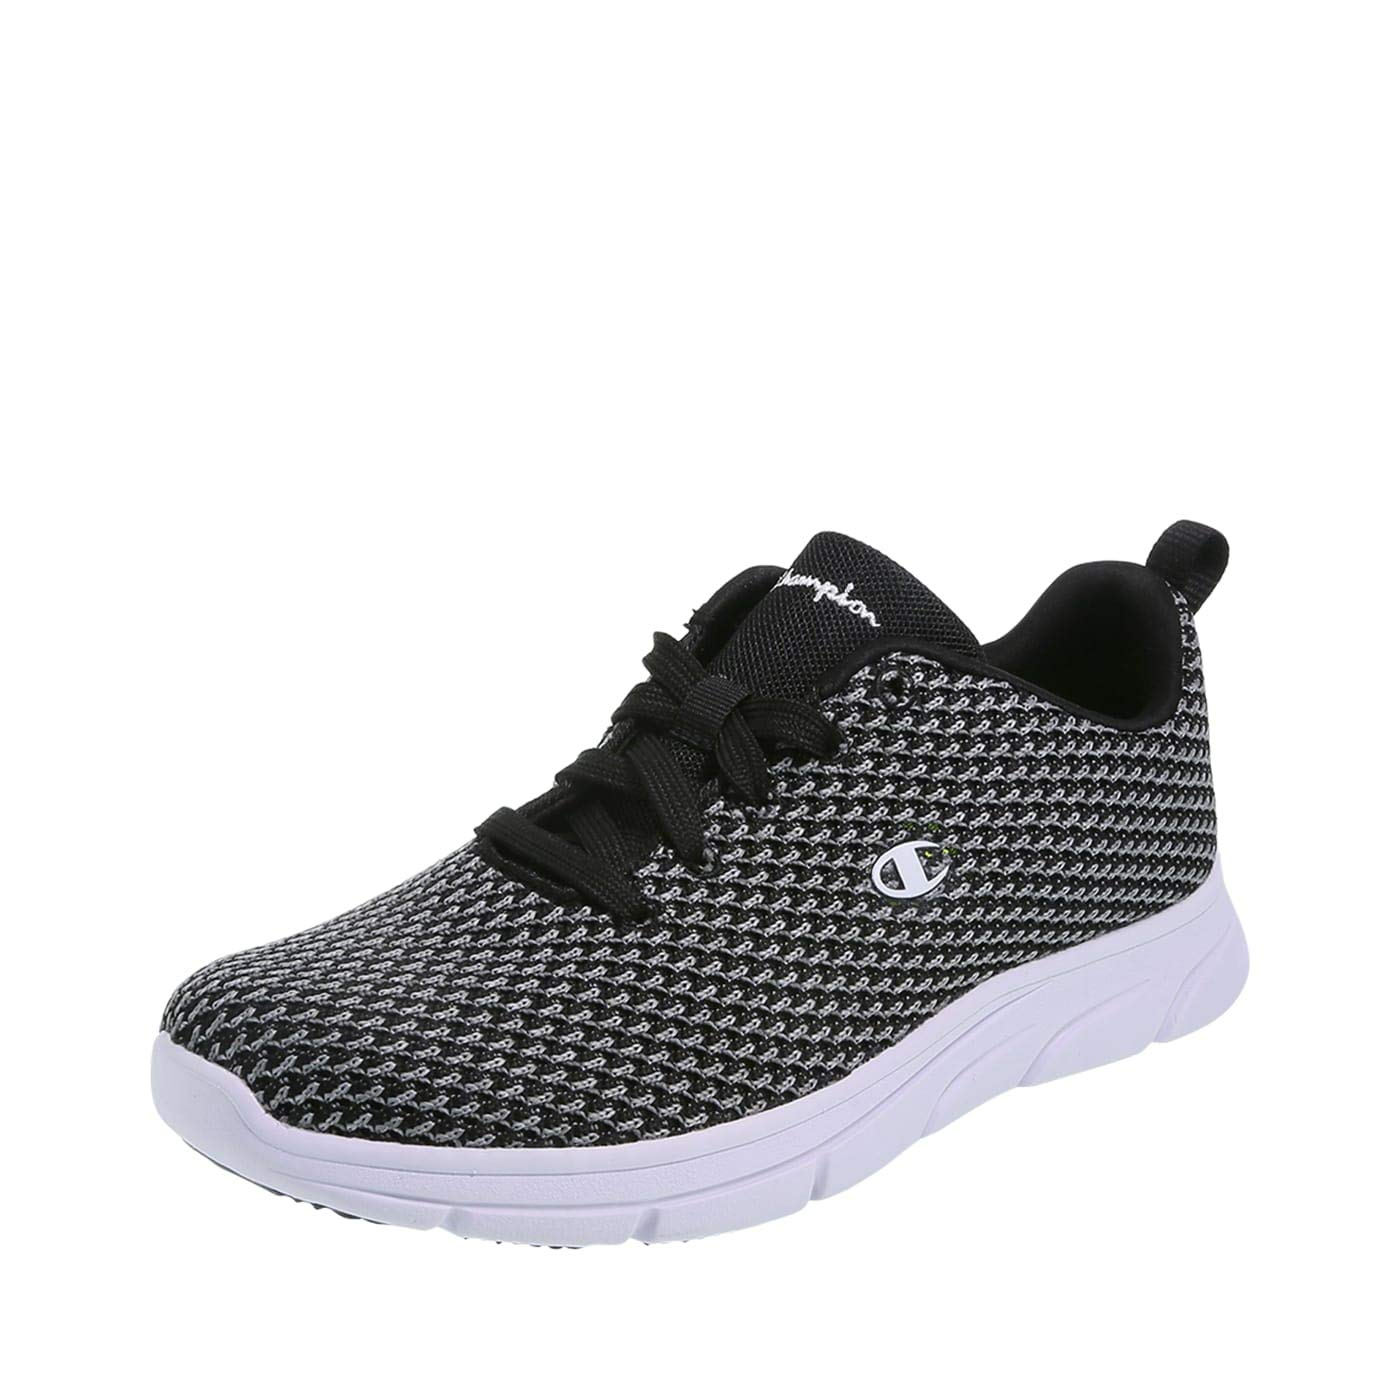 dbc9a797032 Champion Women s Apollo Running Shoes - Trendy